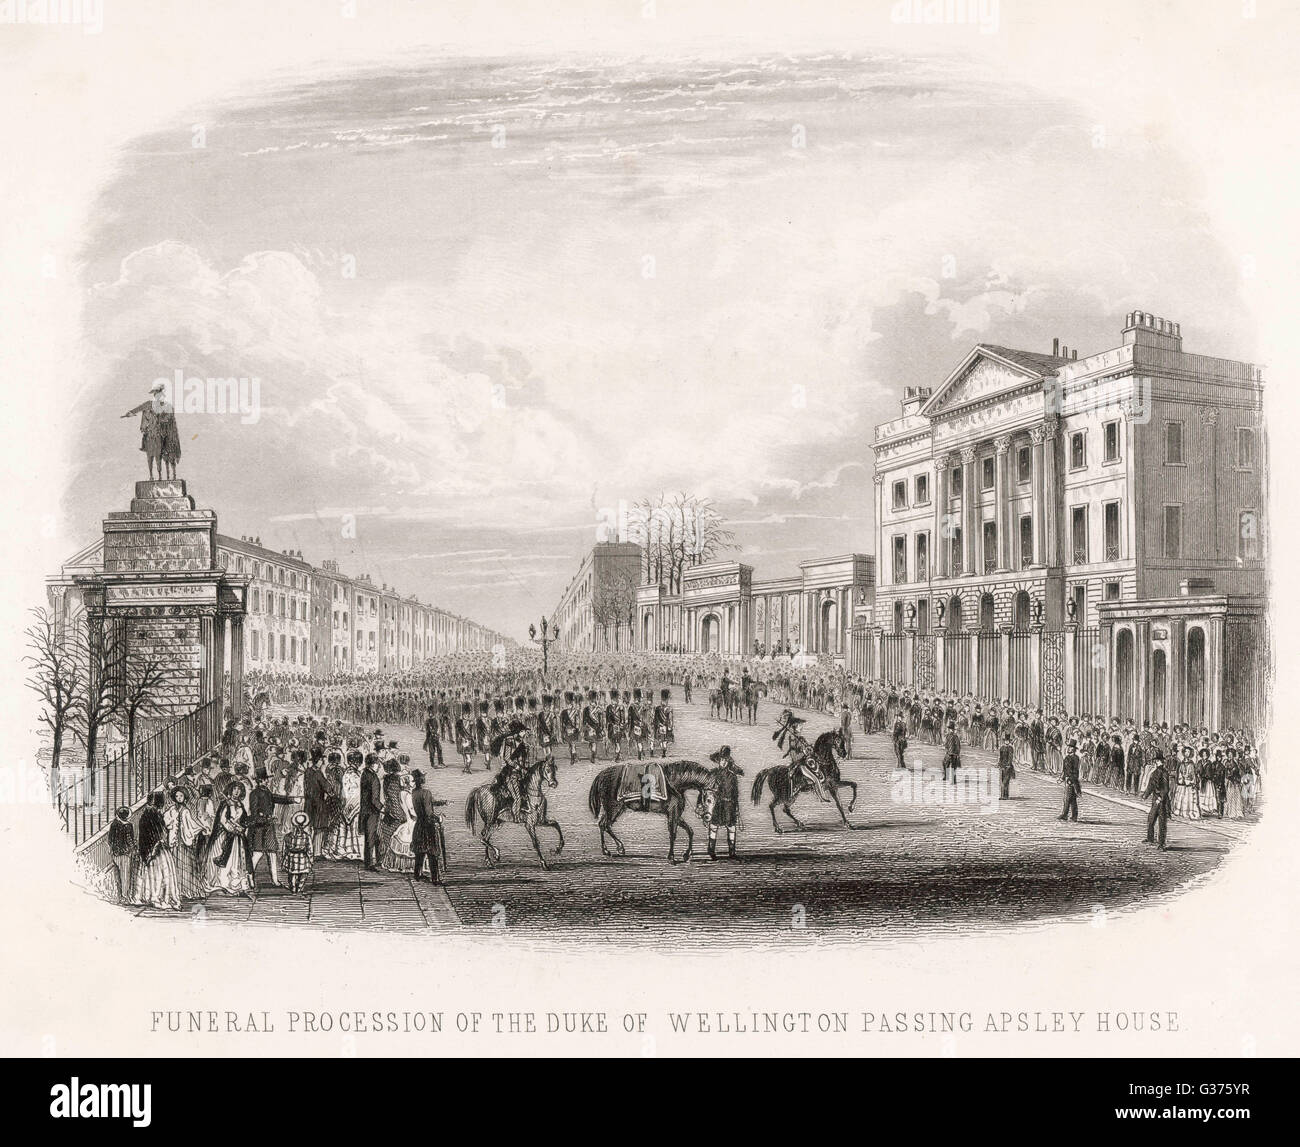 The funeral procession of the  duke of Wellington starts at  his house at Hyde Park Corner,  and passes through - Stock Image